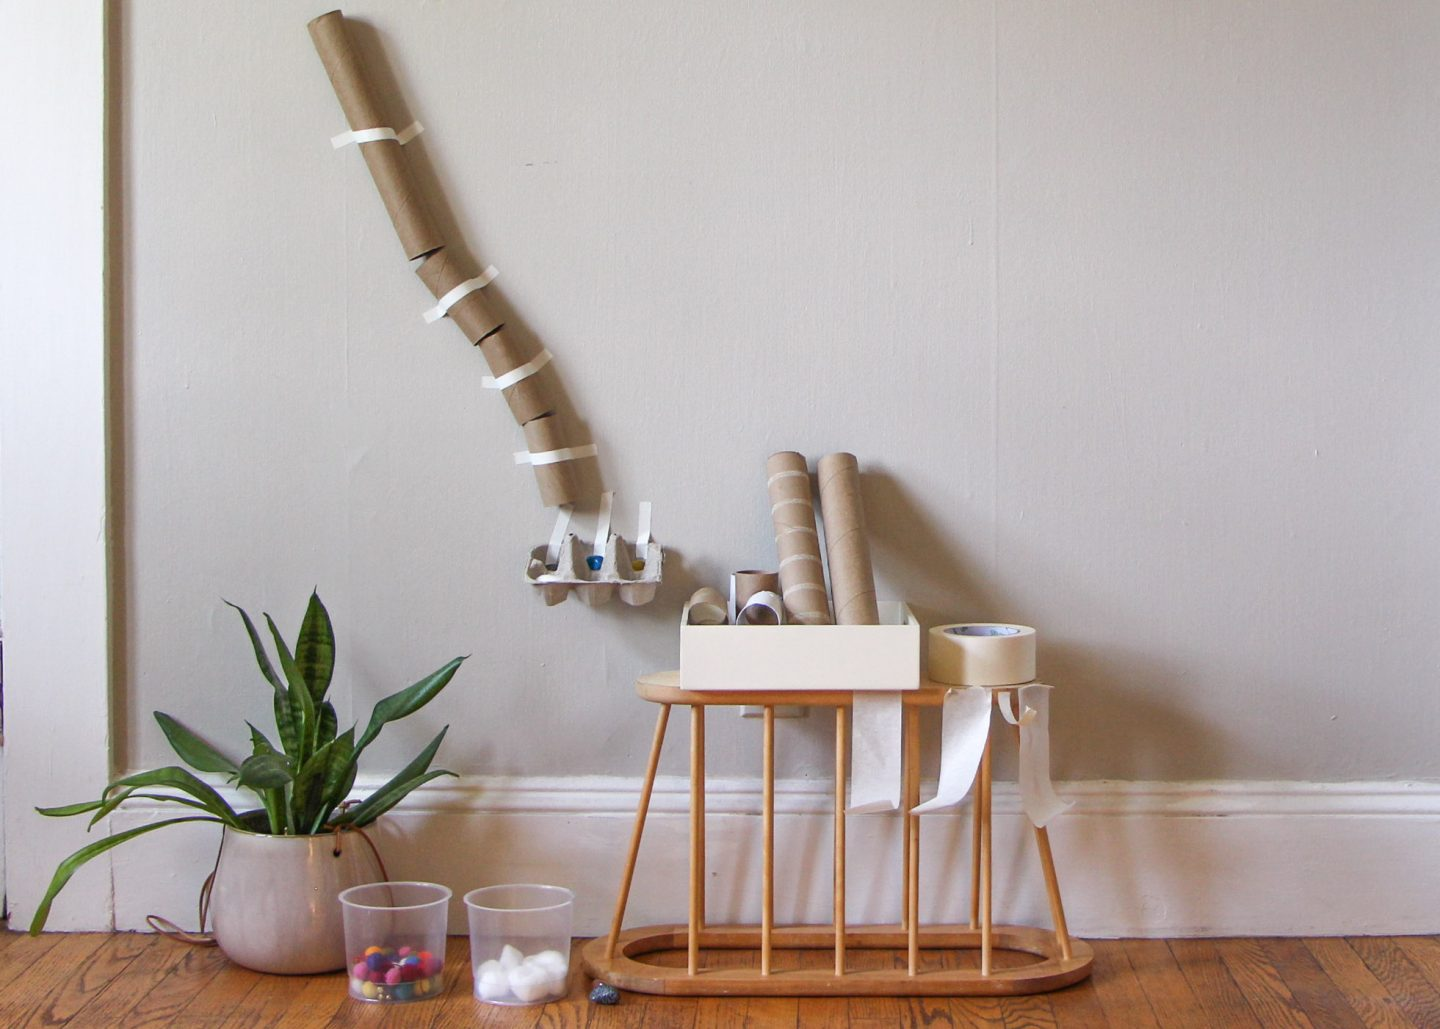 A marble run for toddlers made with recycled materials